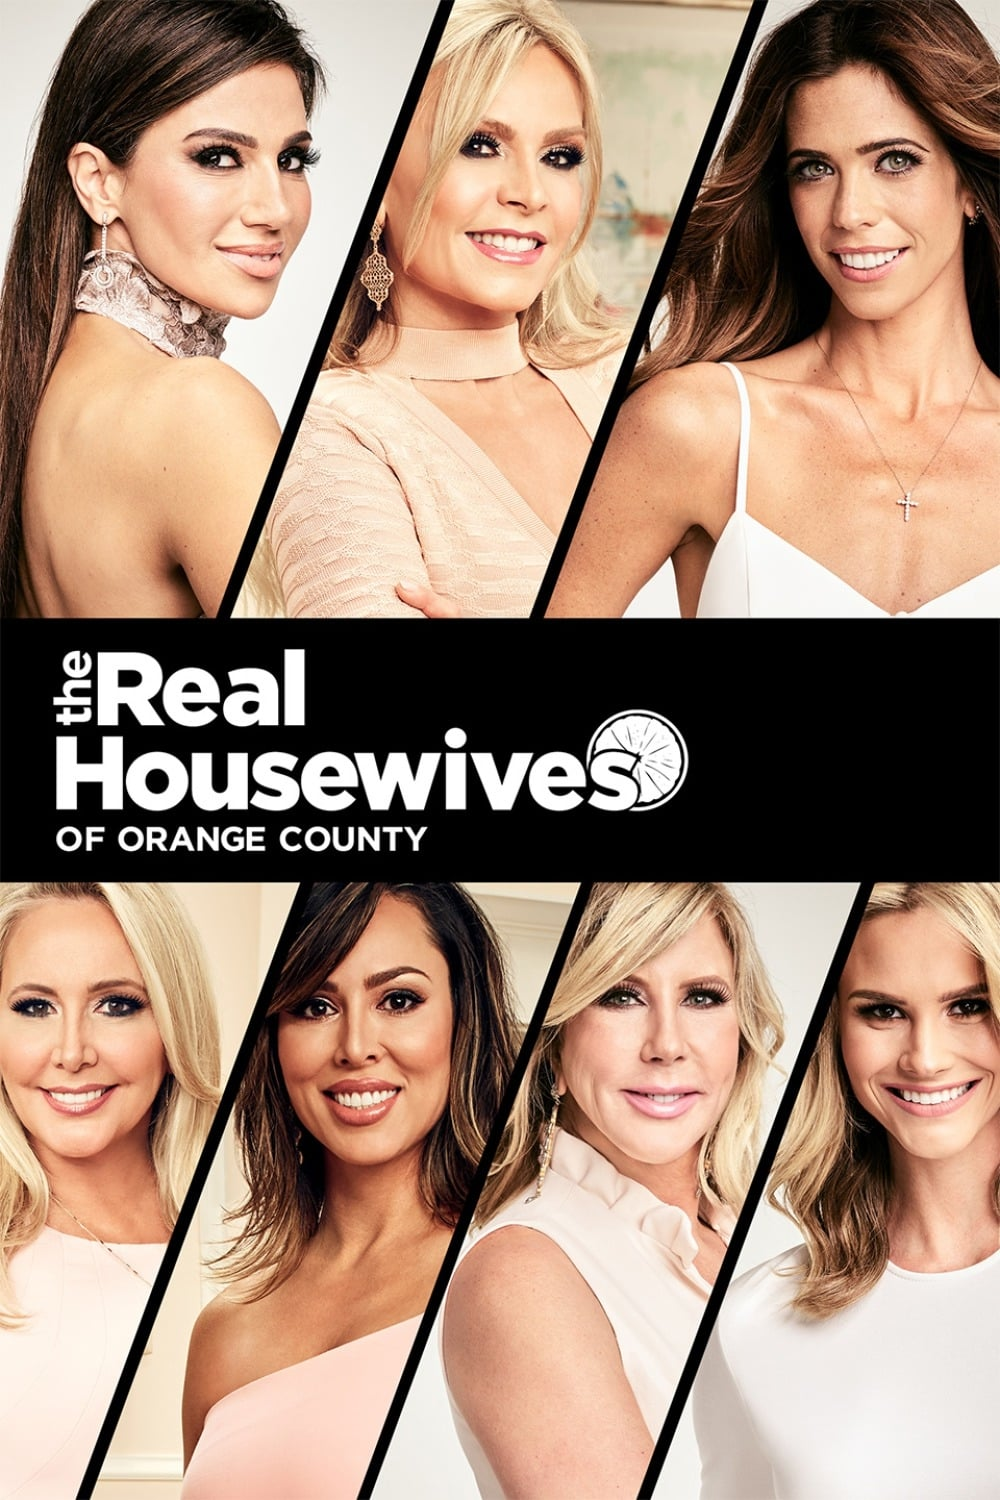 image for The Real Housewives of Orange County